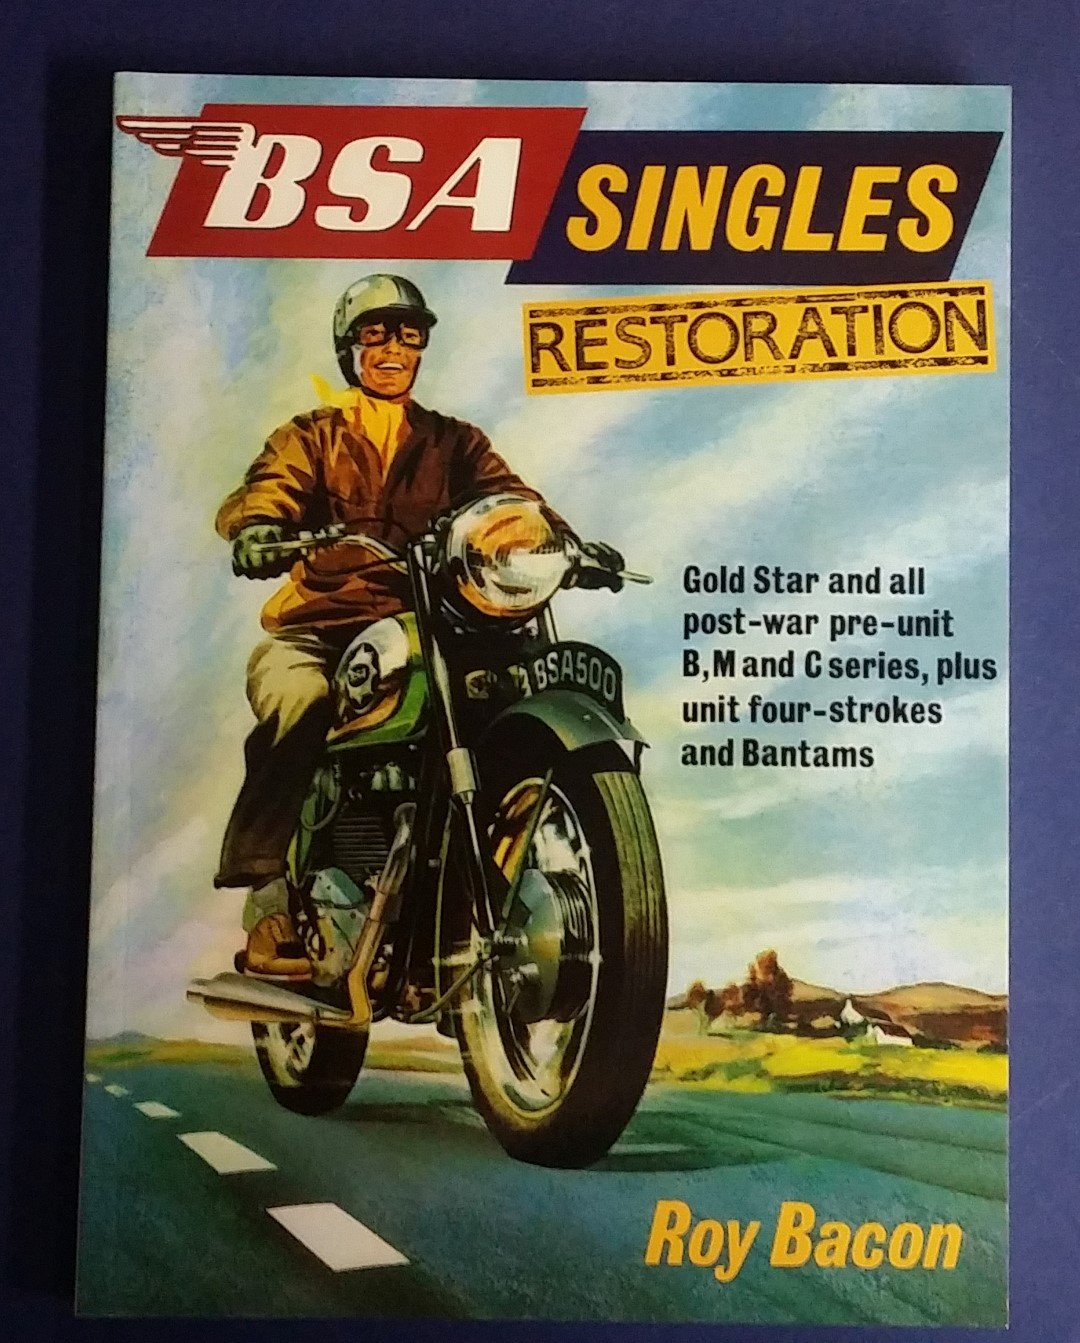 roy bacon motorcycle dating service